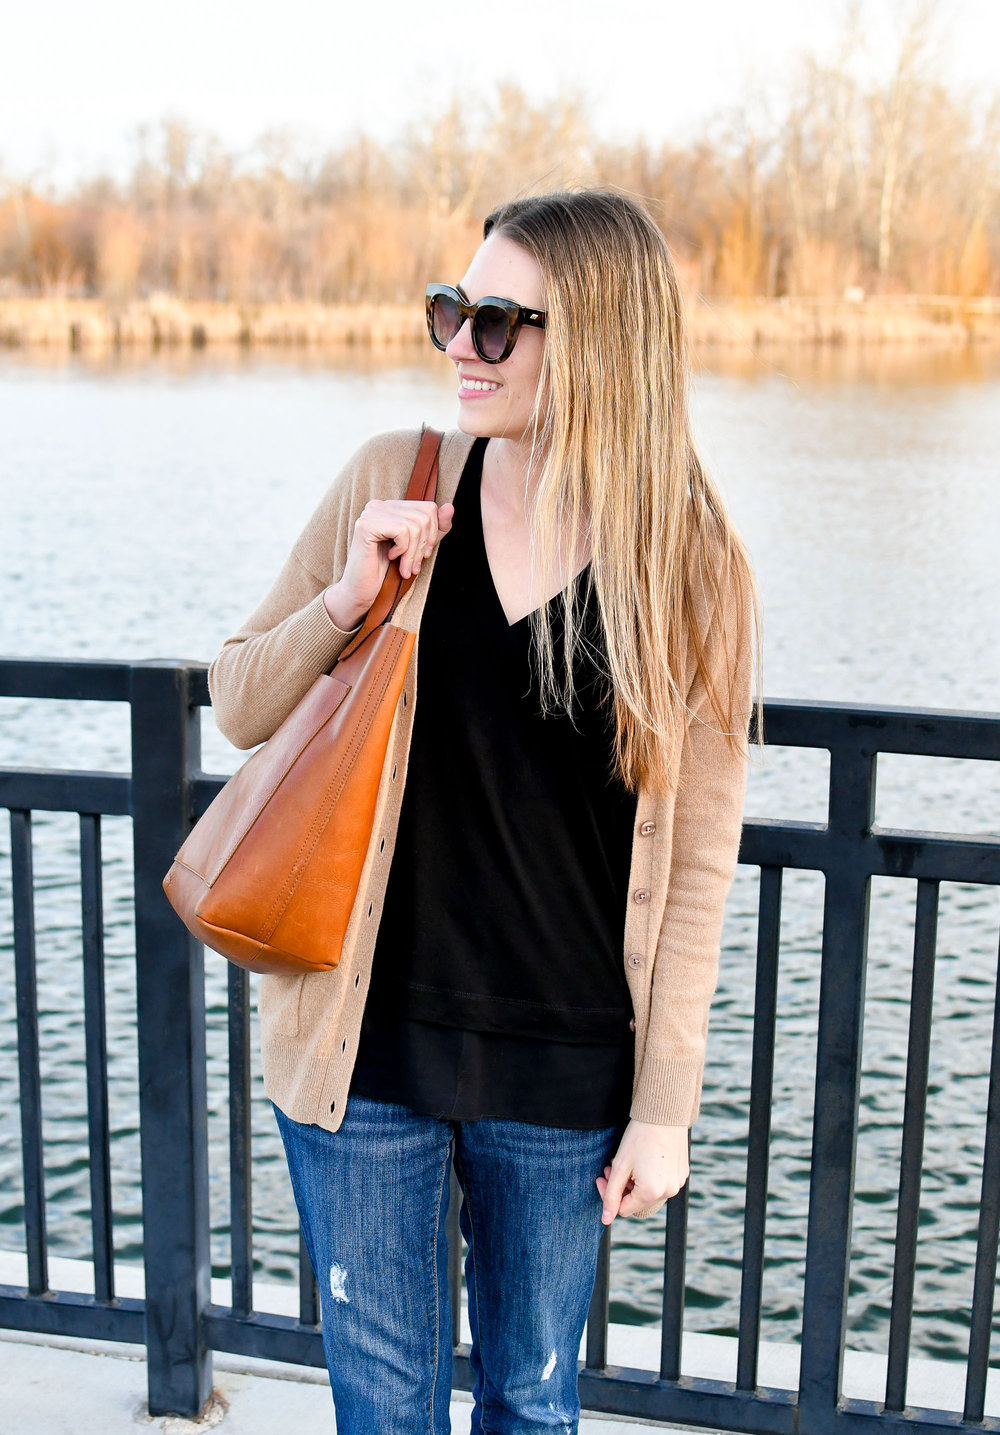 Tan cashmere cardigan, black layered tank top, boyfriend jeans, Transport tote — Cotton Cashmere Cat Hair